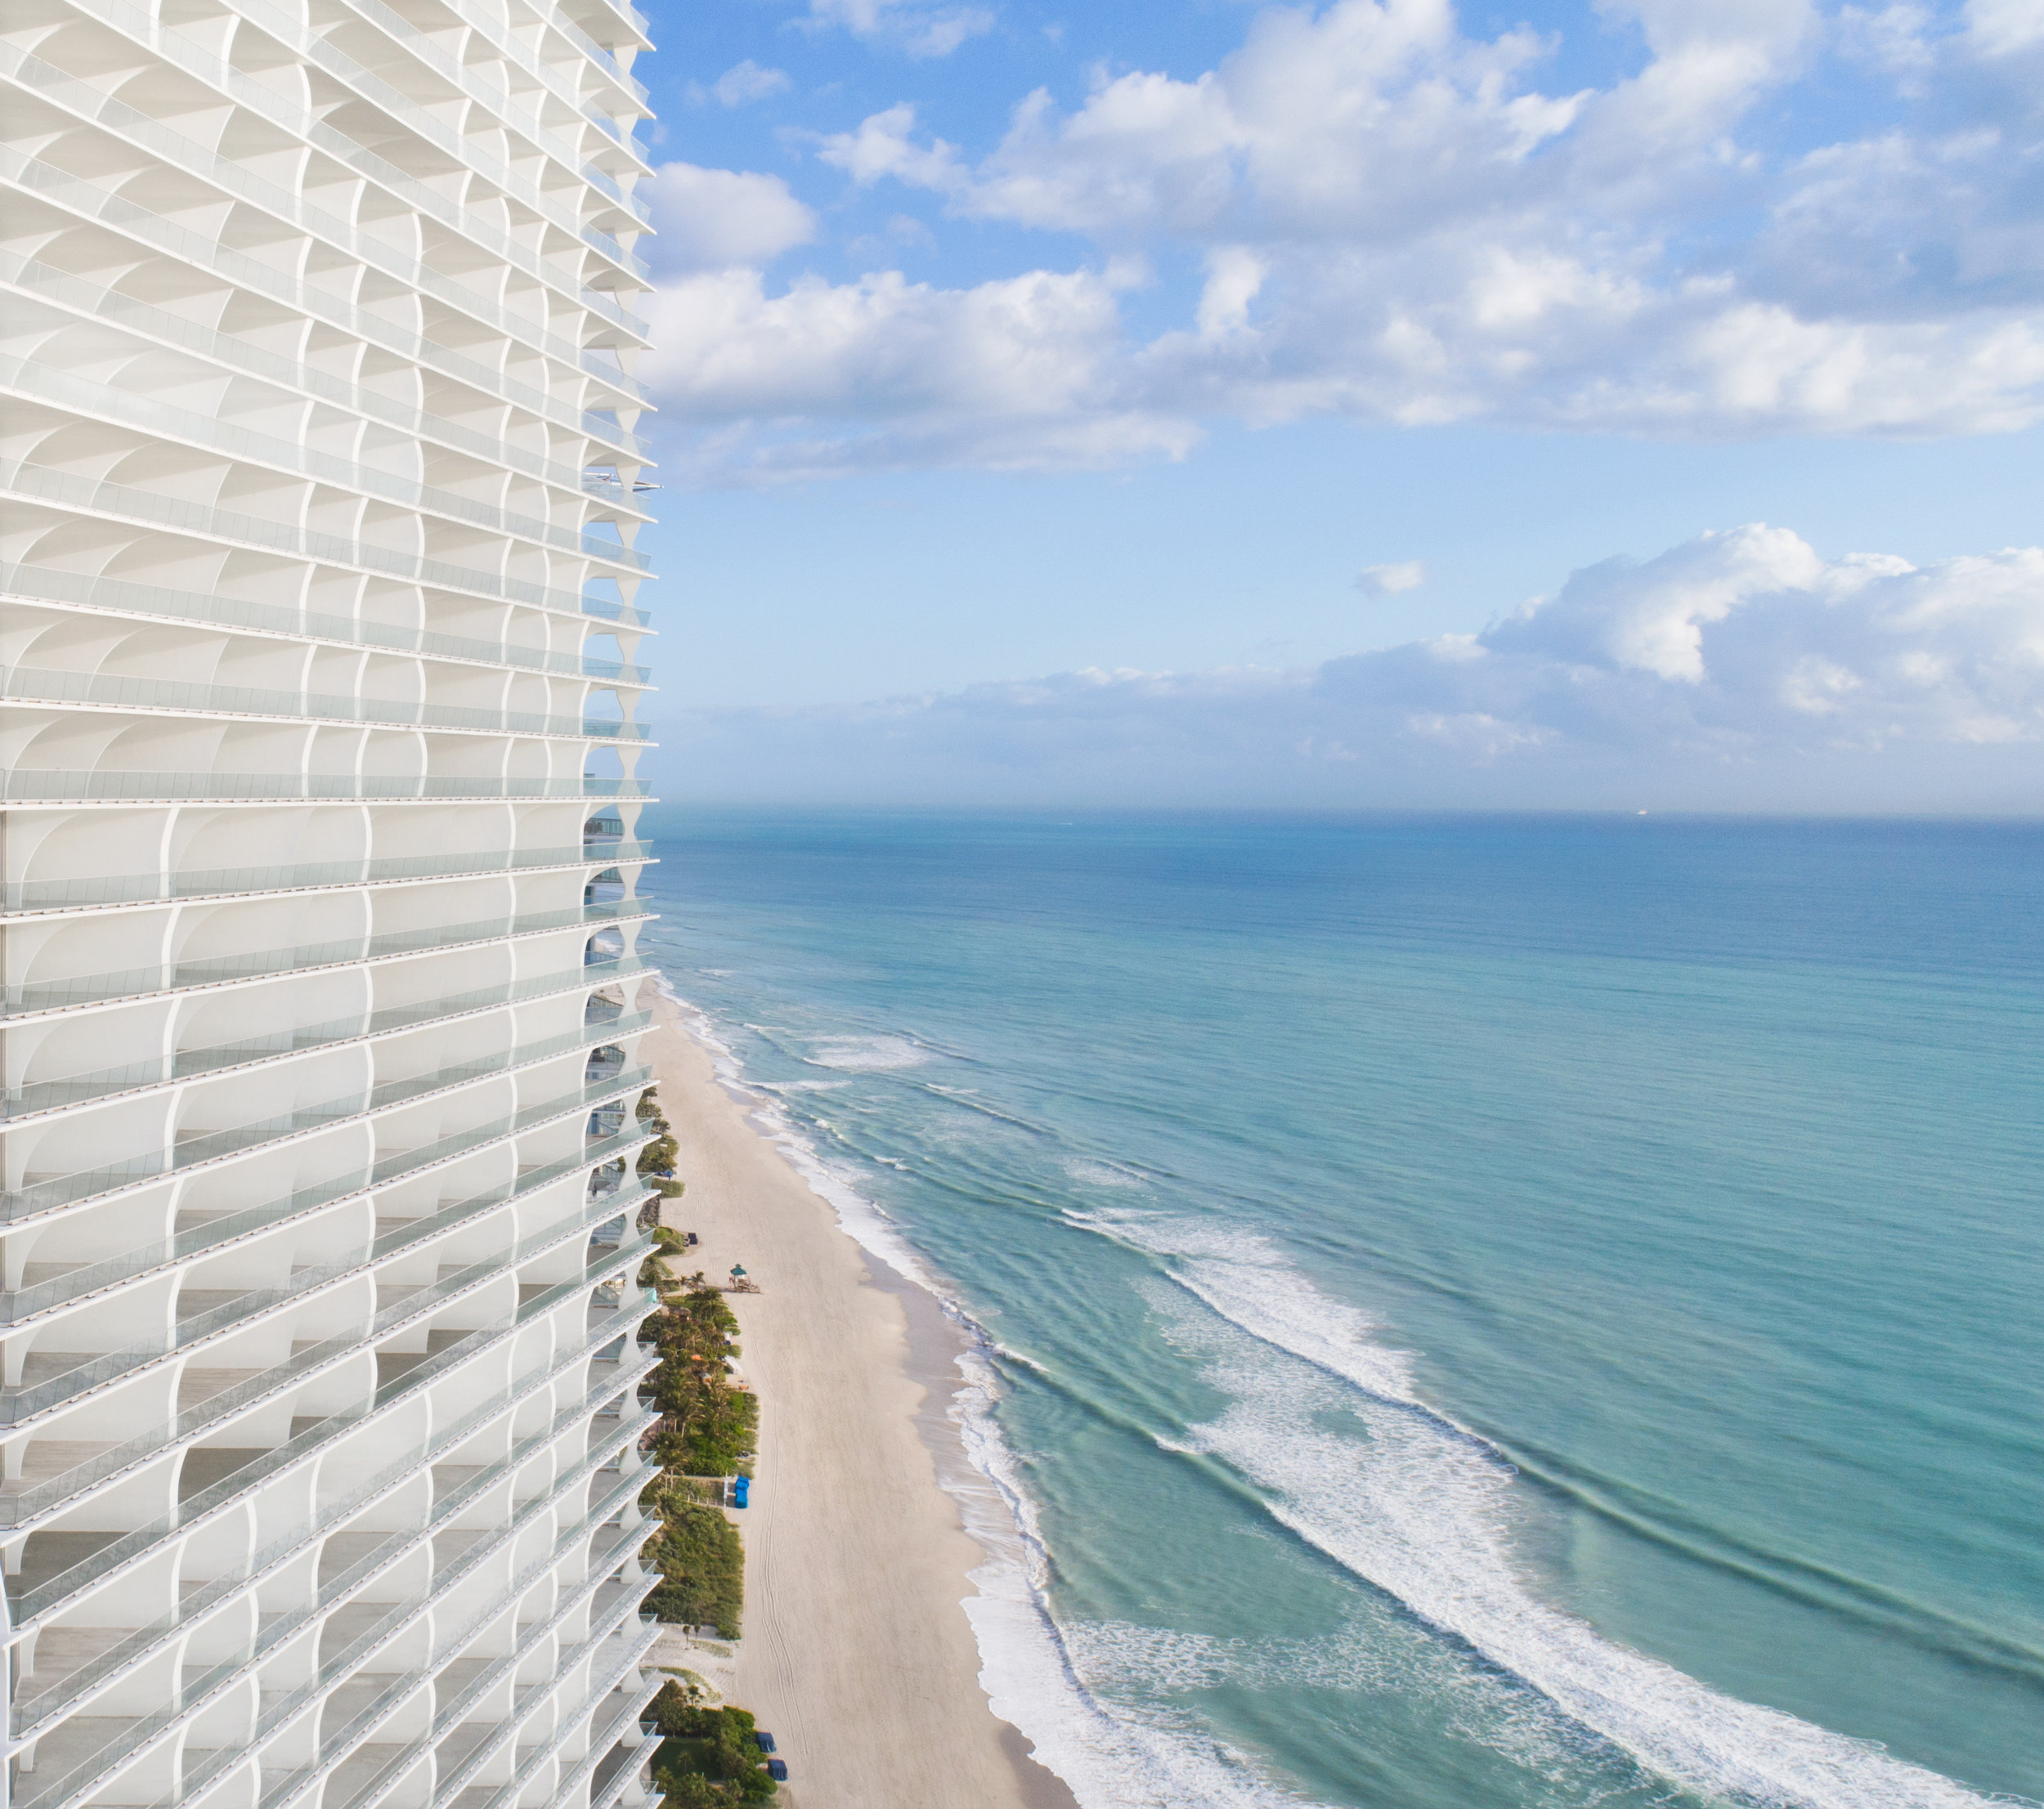 Check Out The Stunning Drone Images Of The Newly Delivered, Herzog & de Meuron-Designed Jade Signature in Sunny Isles Beach